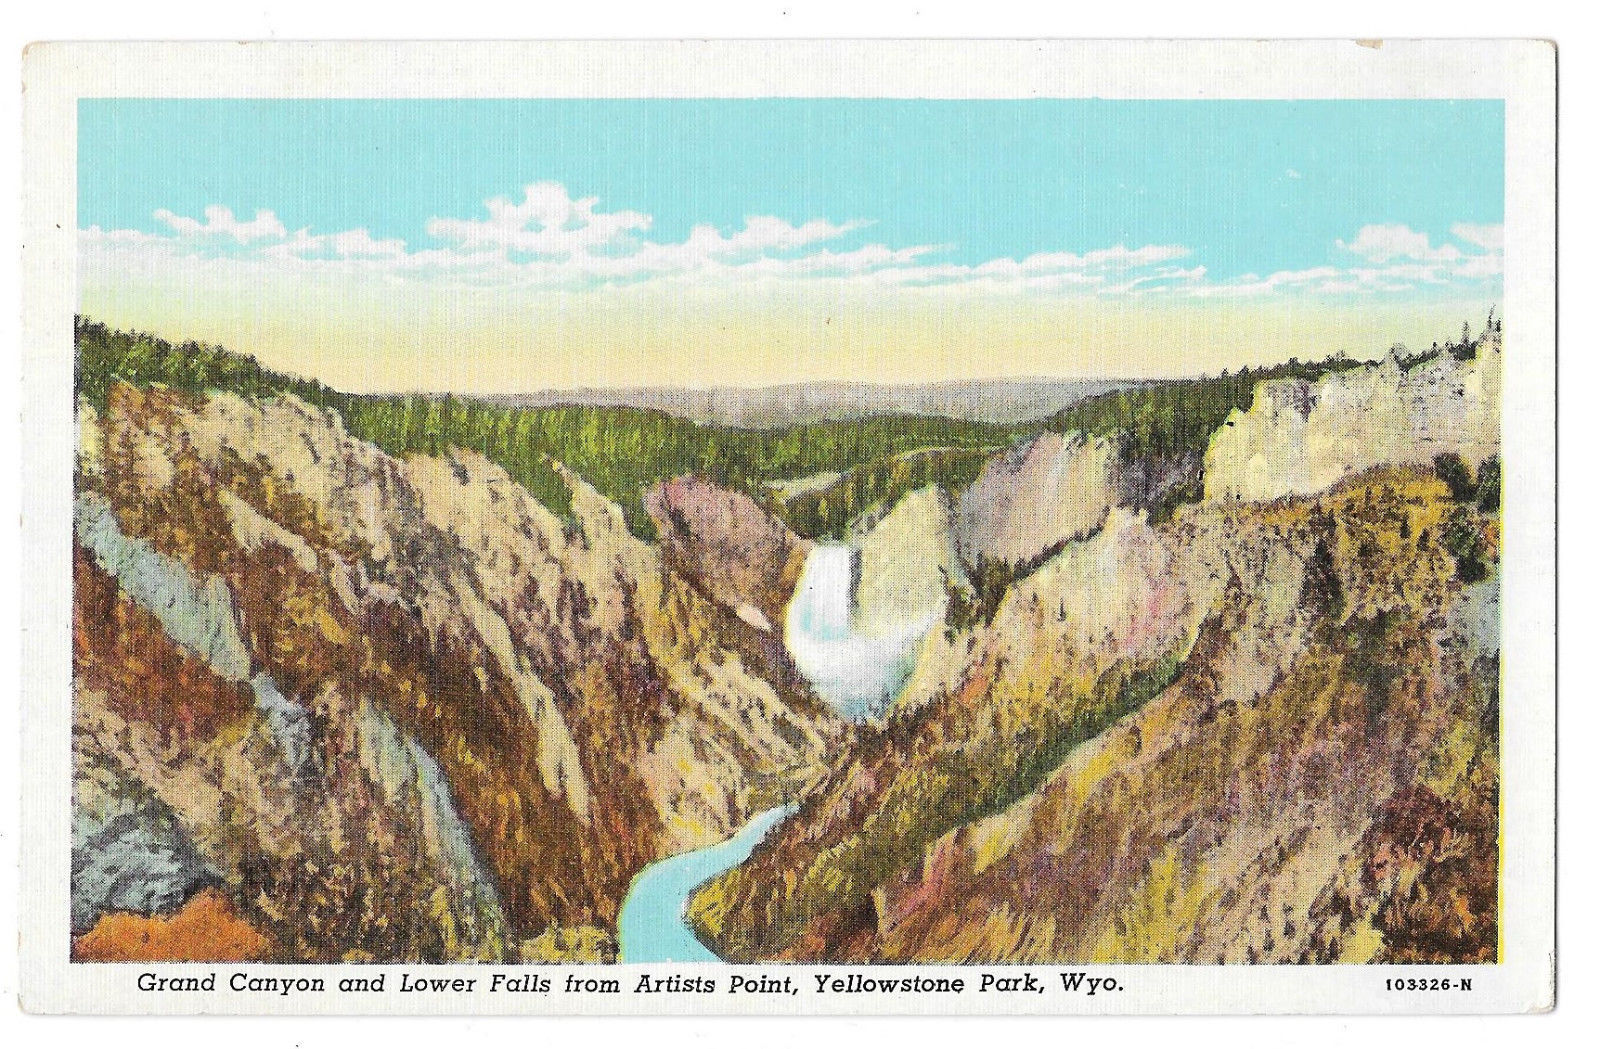 WY Yellowstone Park Grand Canyon Lower Falls Artist Point Vtg S P Eagle Postcard